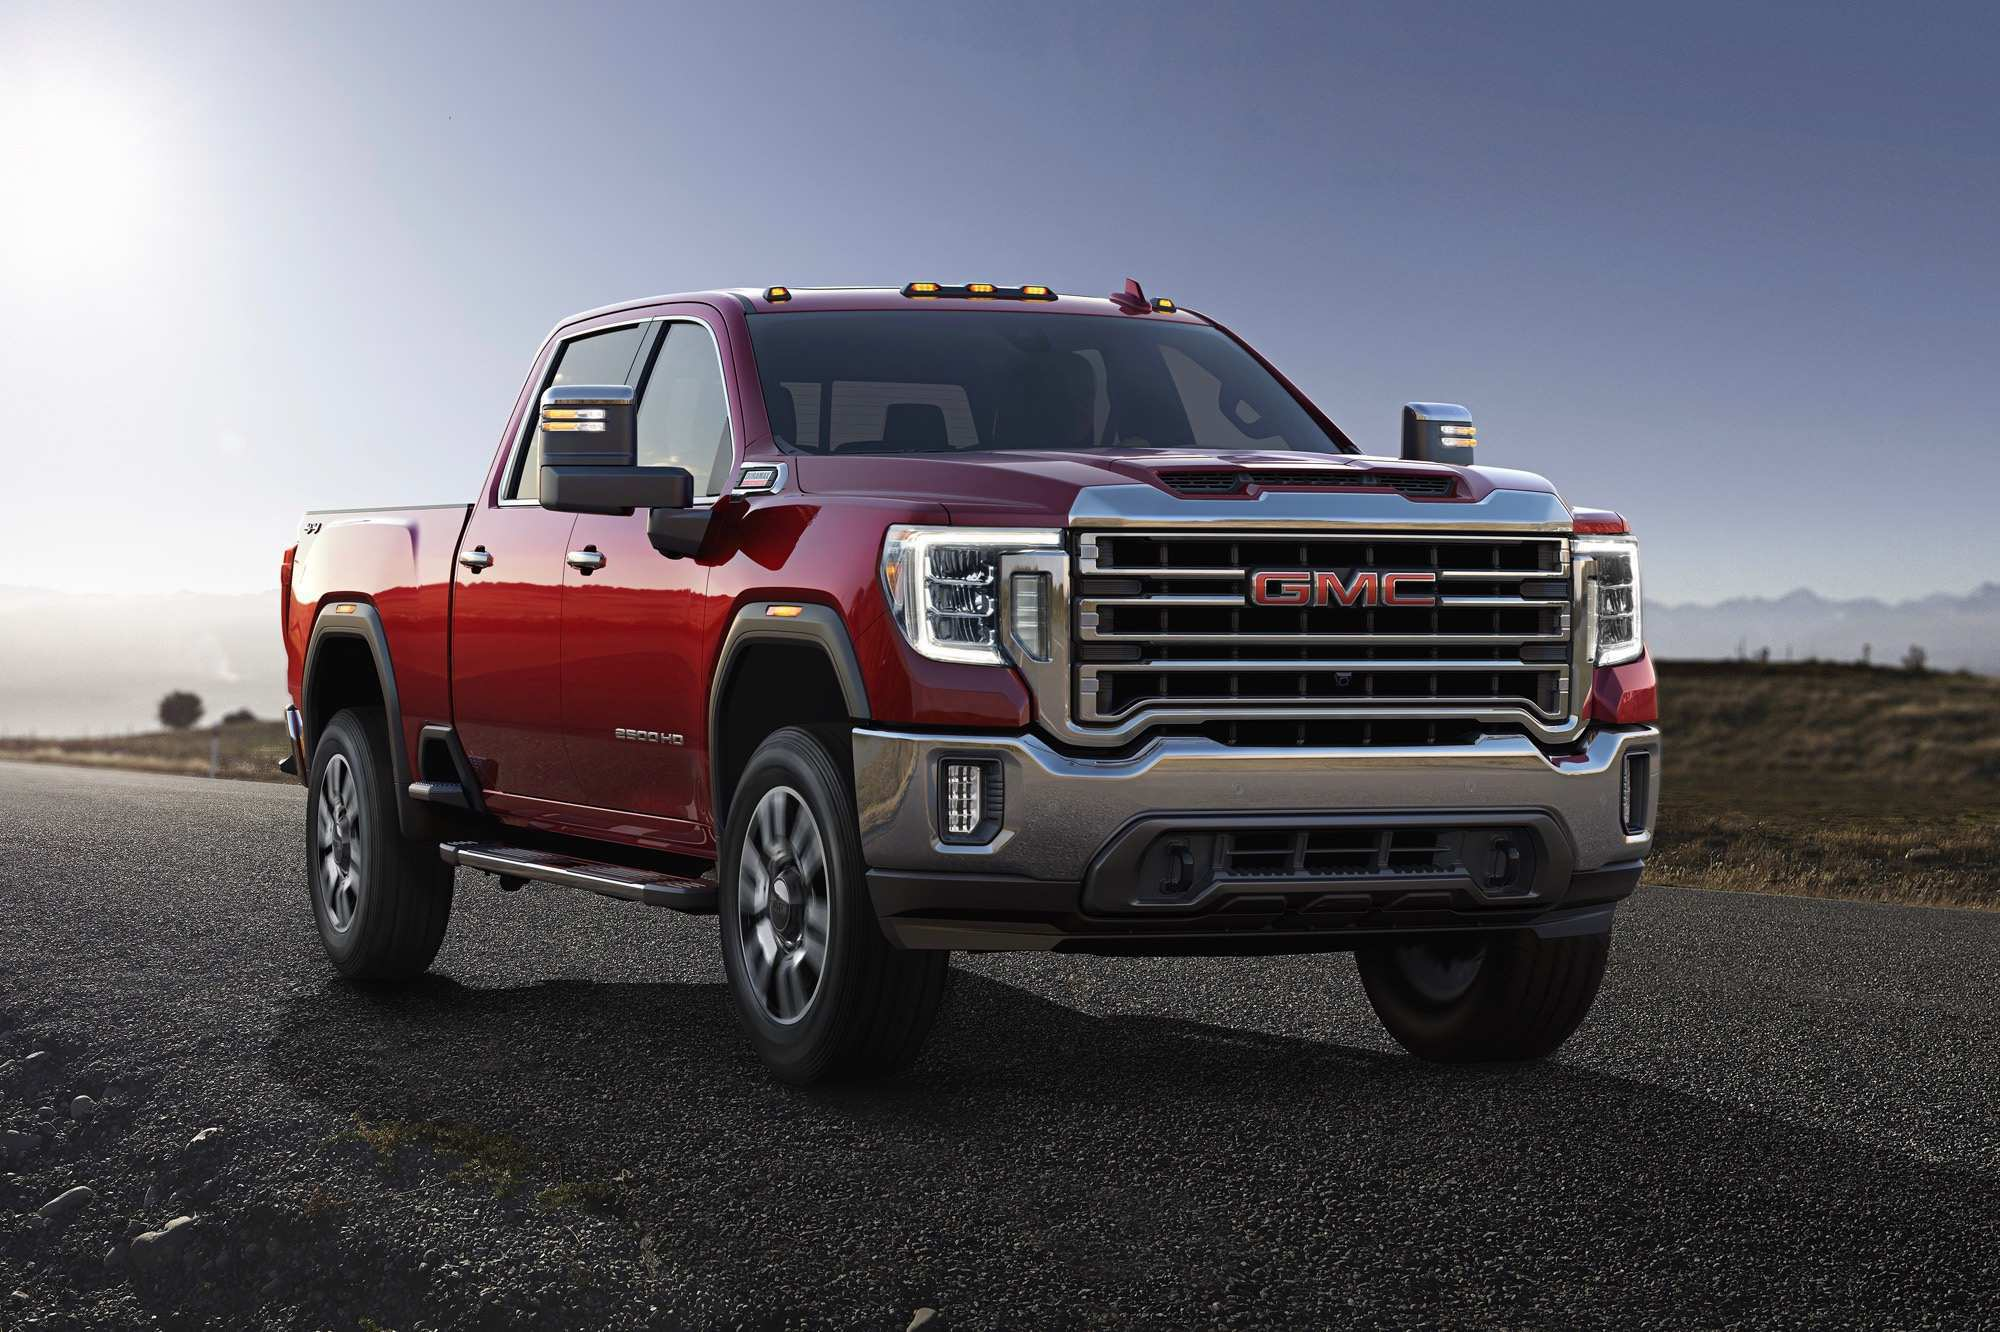 15 Best Gmc New Models 2020 Concept and Review